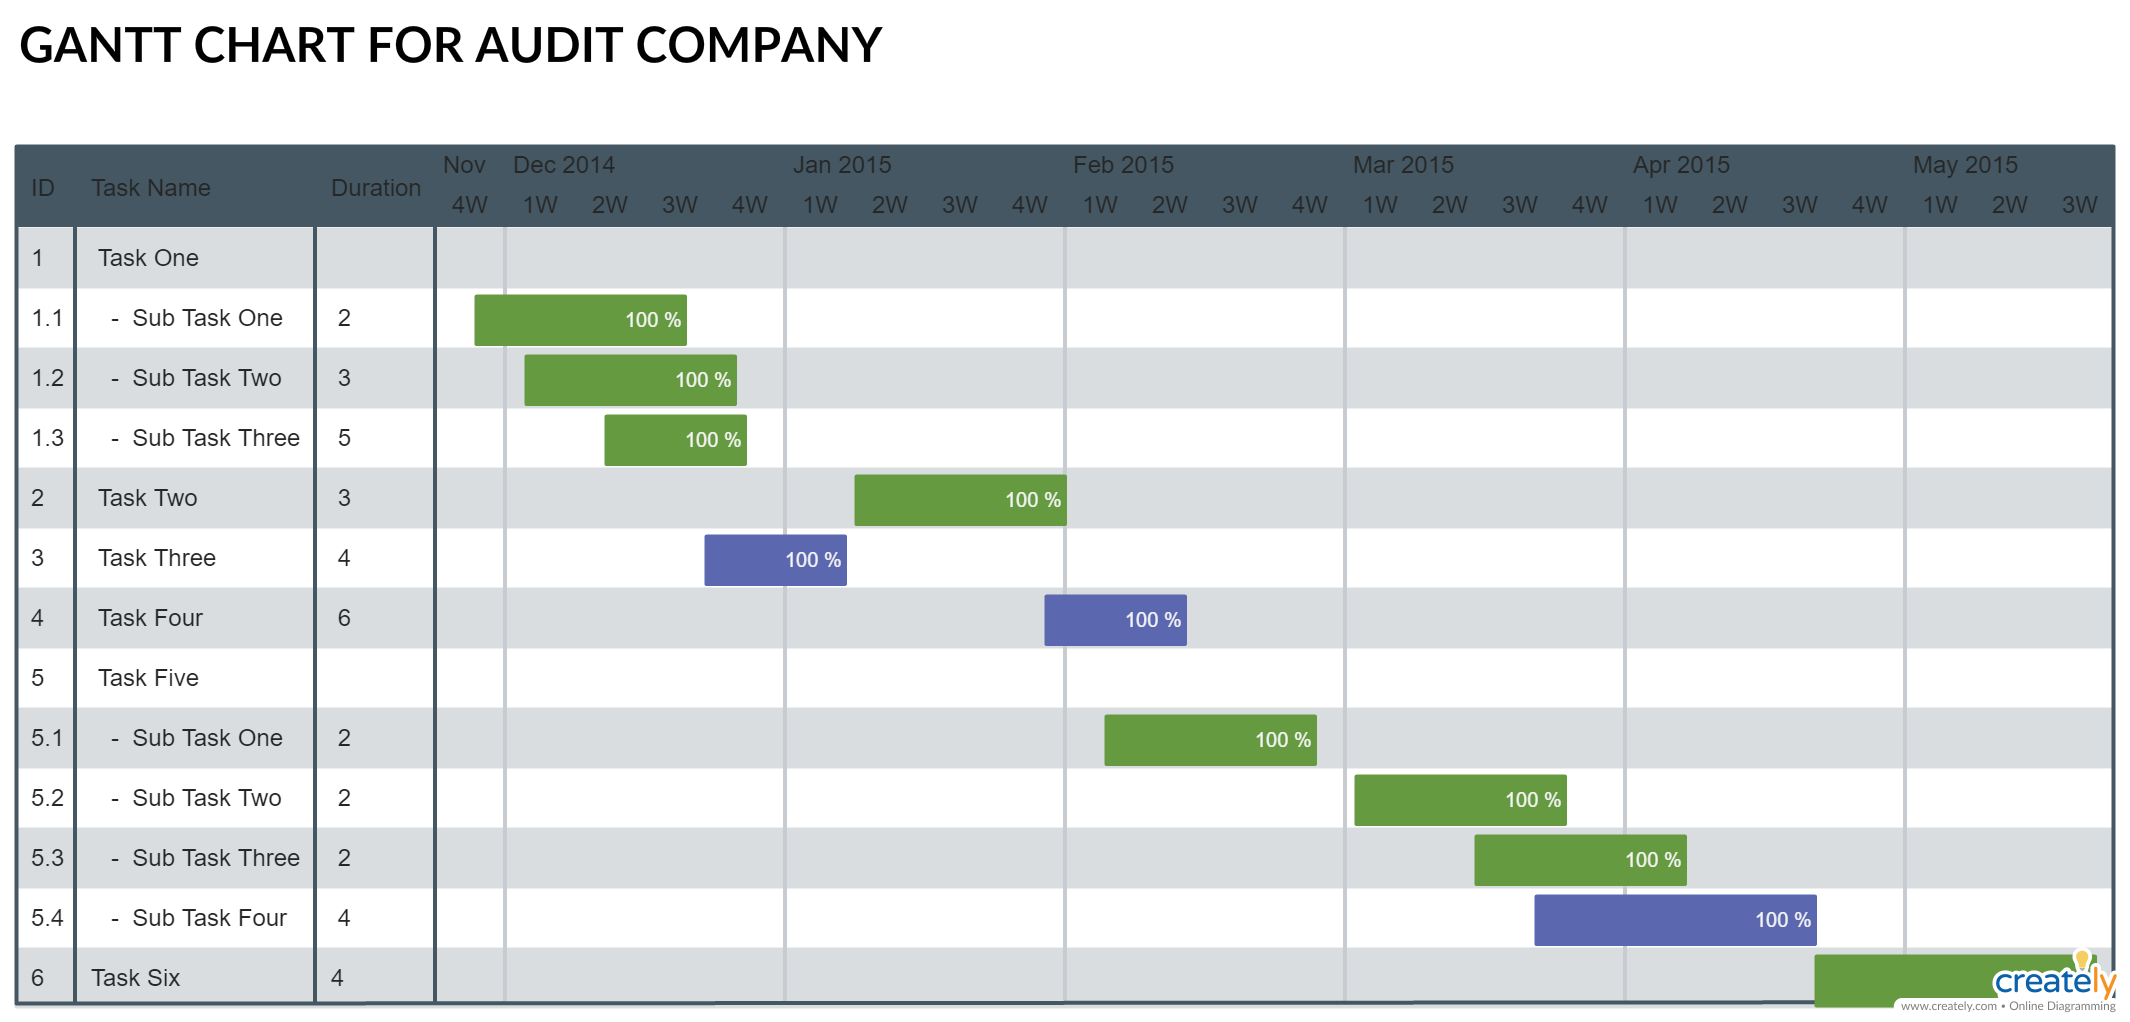 gantt chart for company audit